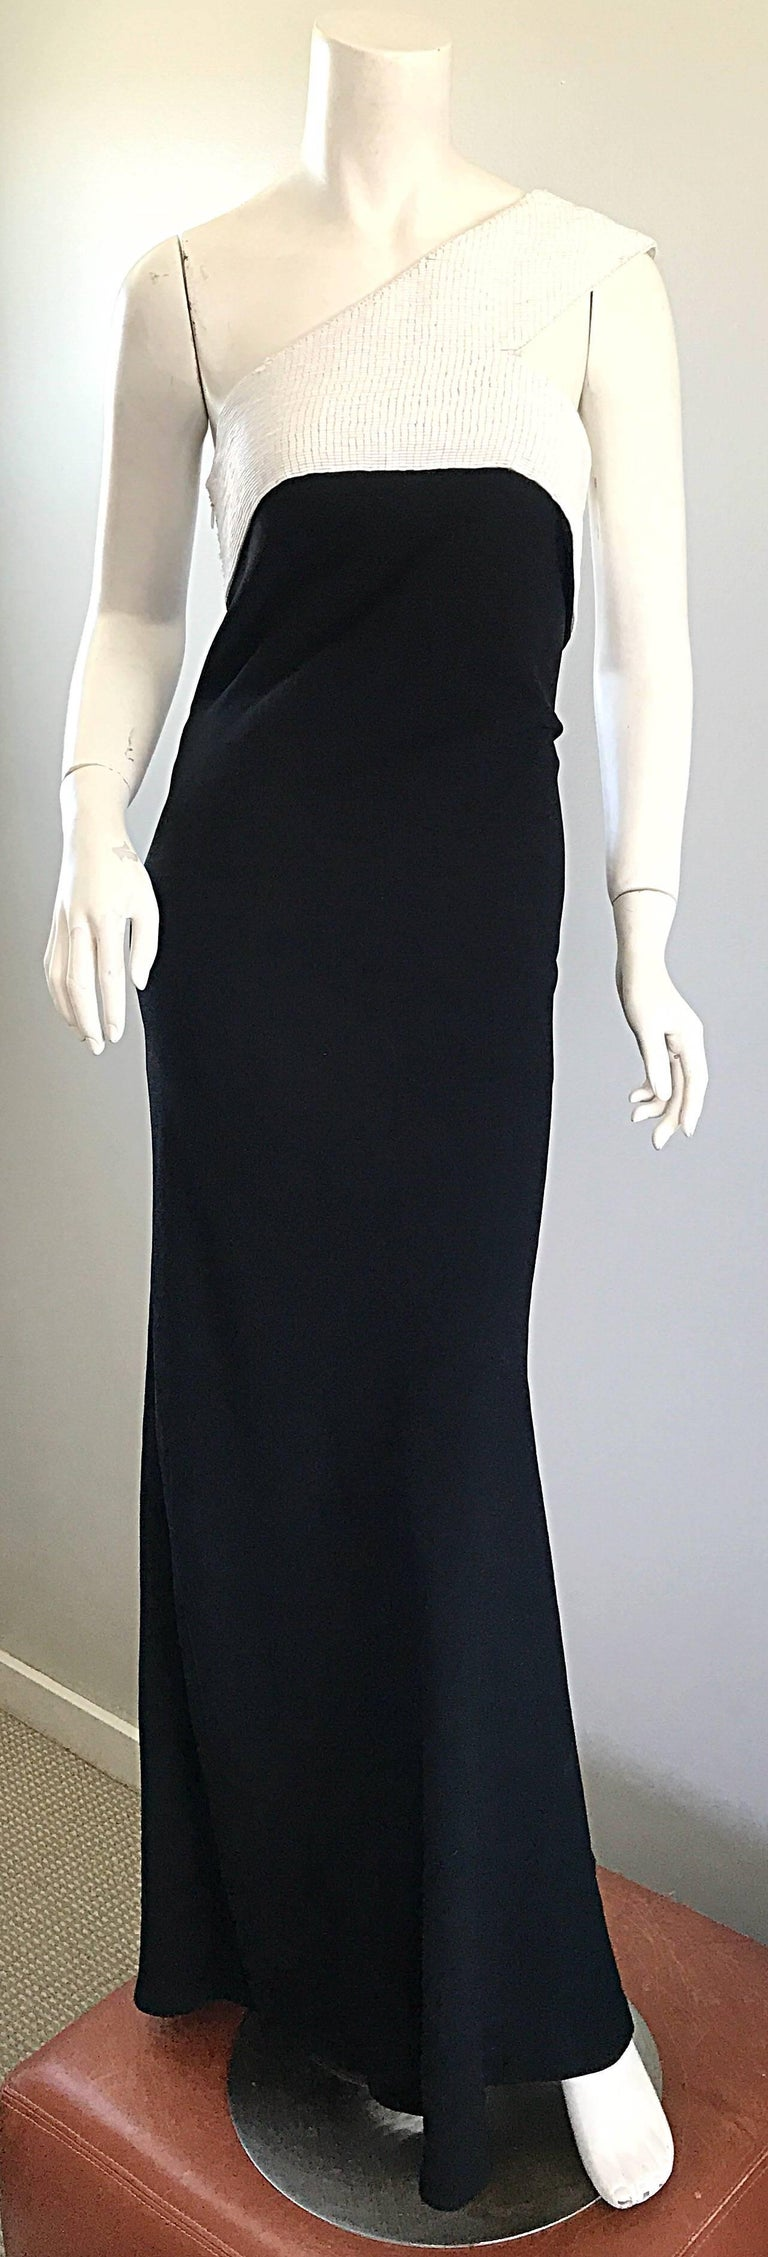 Red Carpet sophistication 1990s JACKIE ROGERS black and white one shoulder beaded color blocked silk evening dress! Features a flattering form fitting bodice with a tailored body, and slight flare at the hem. Hundreds of hand sewn beads encrusted on